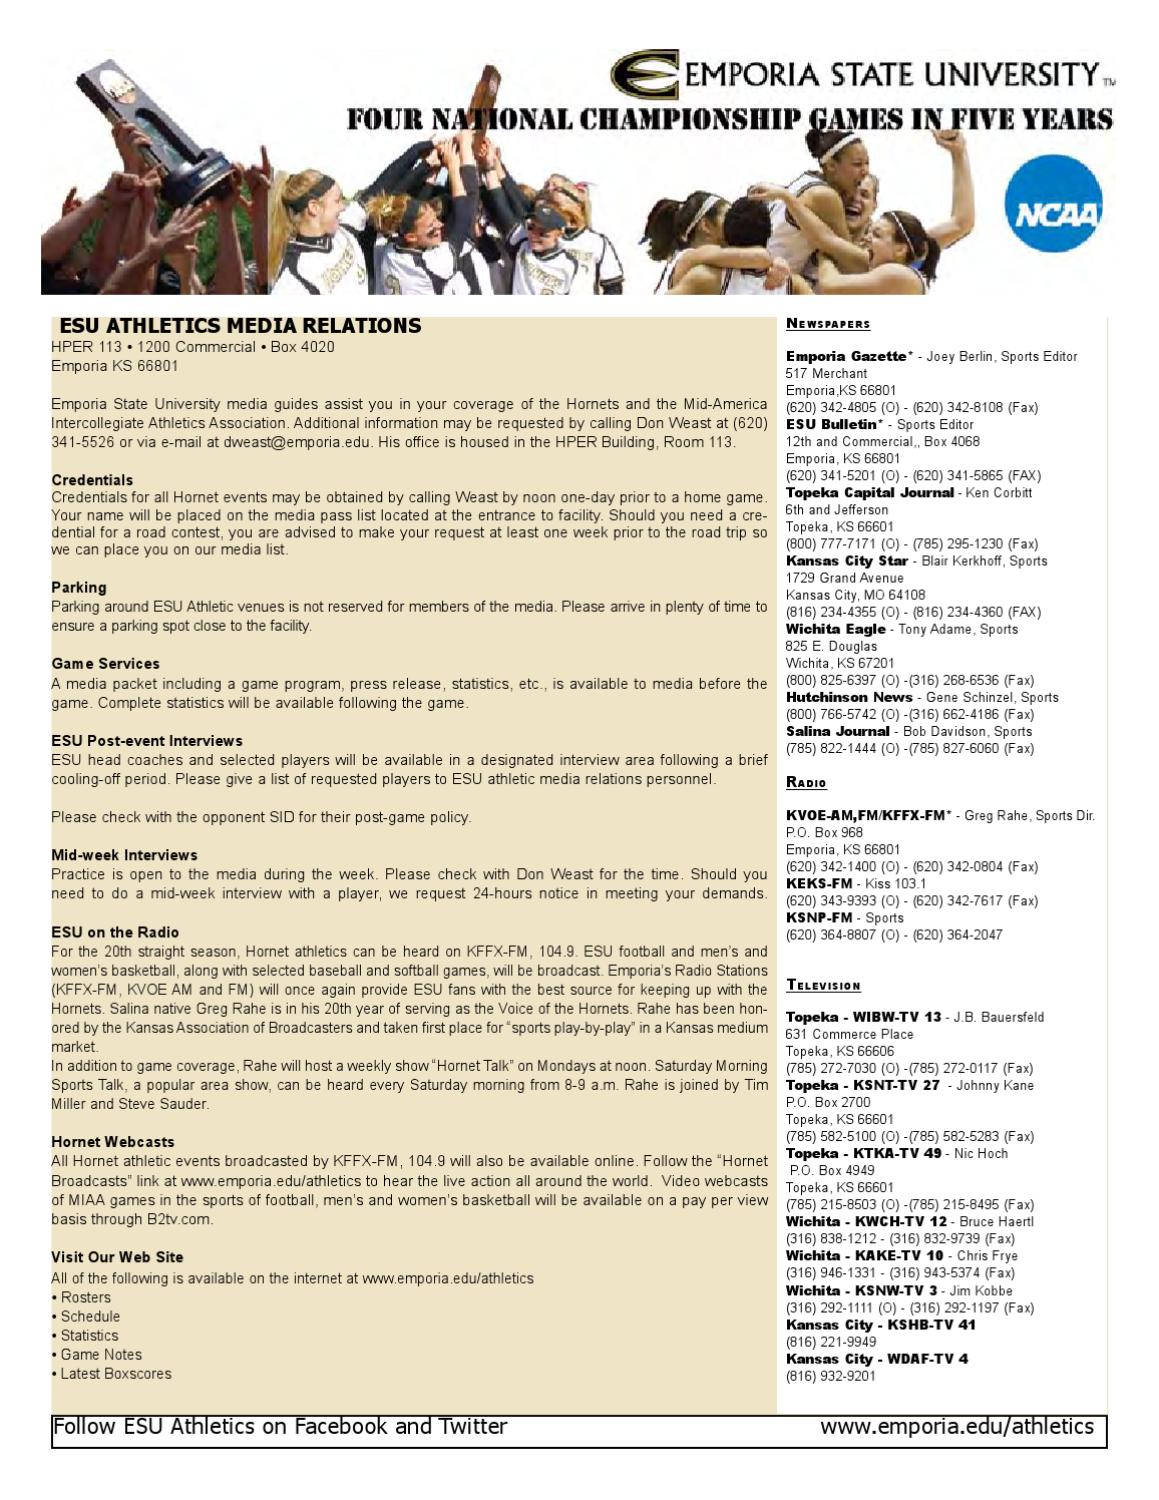 Football media guide by Emporia State University - issuu